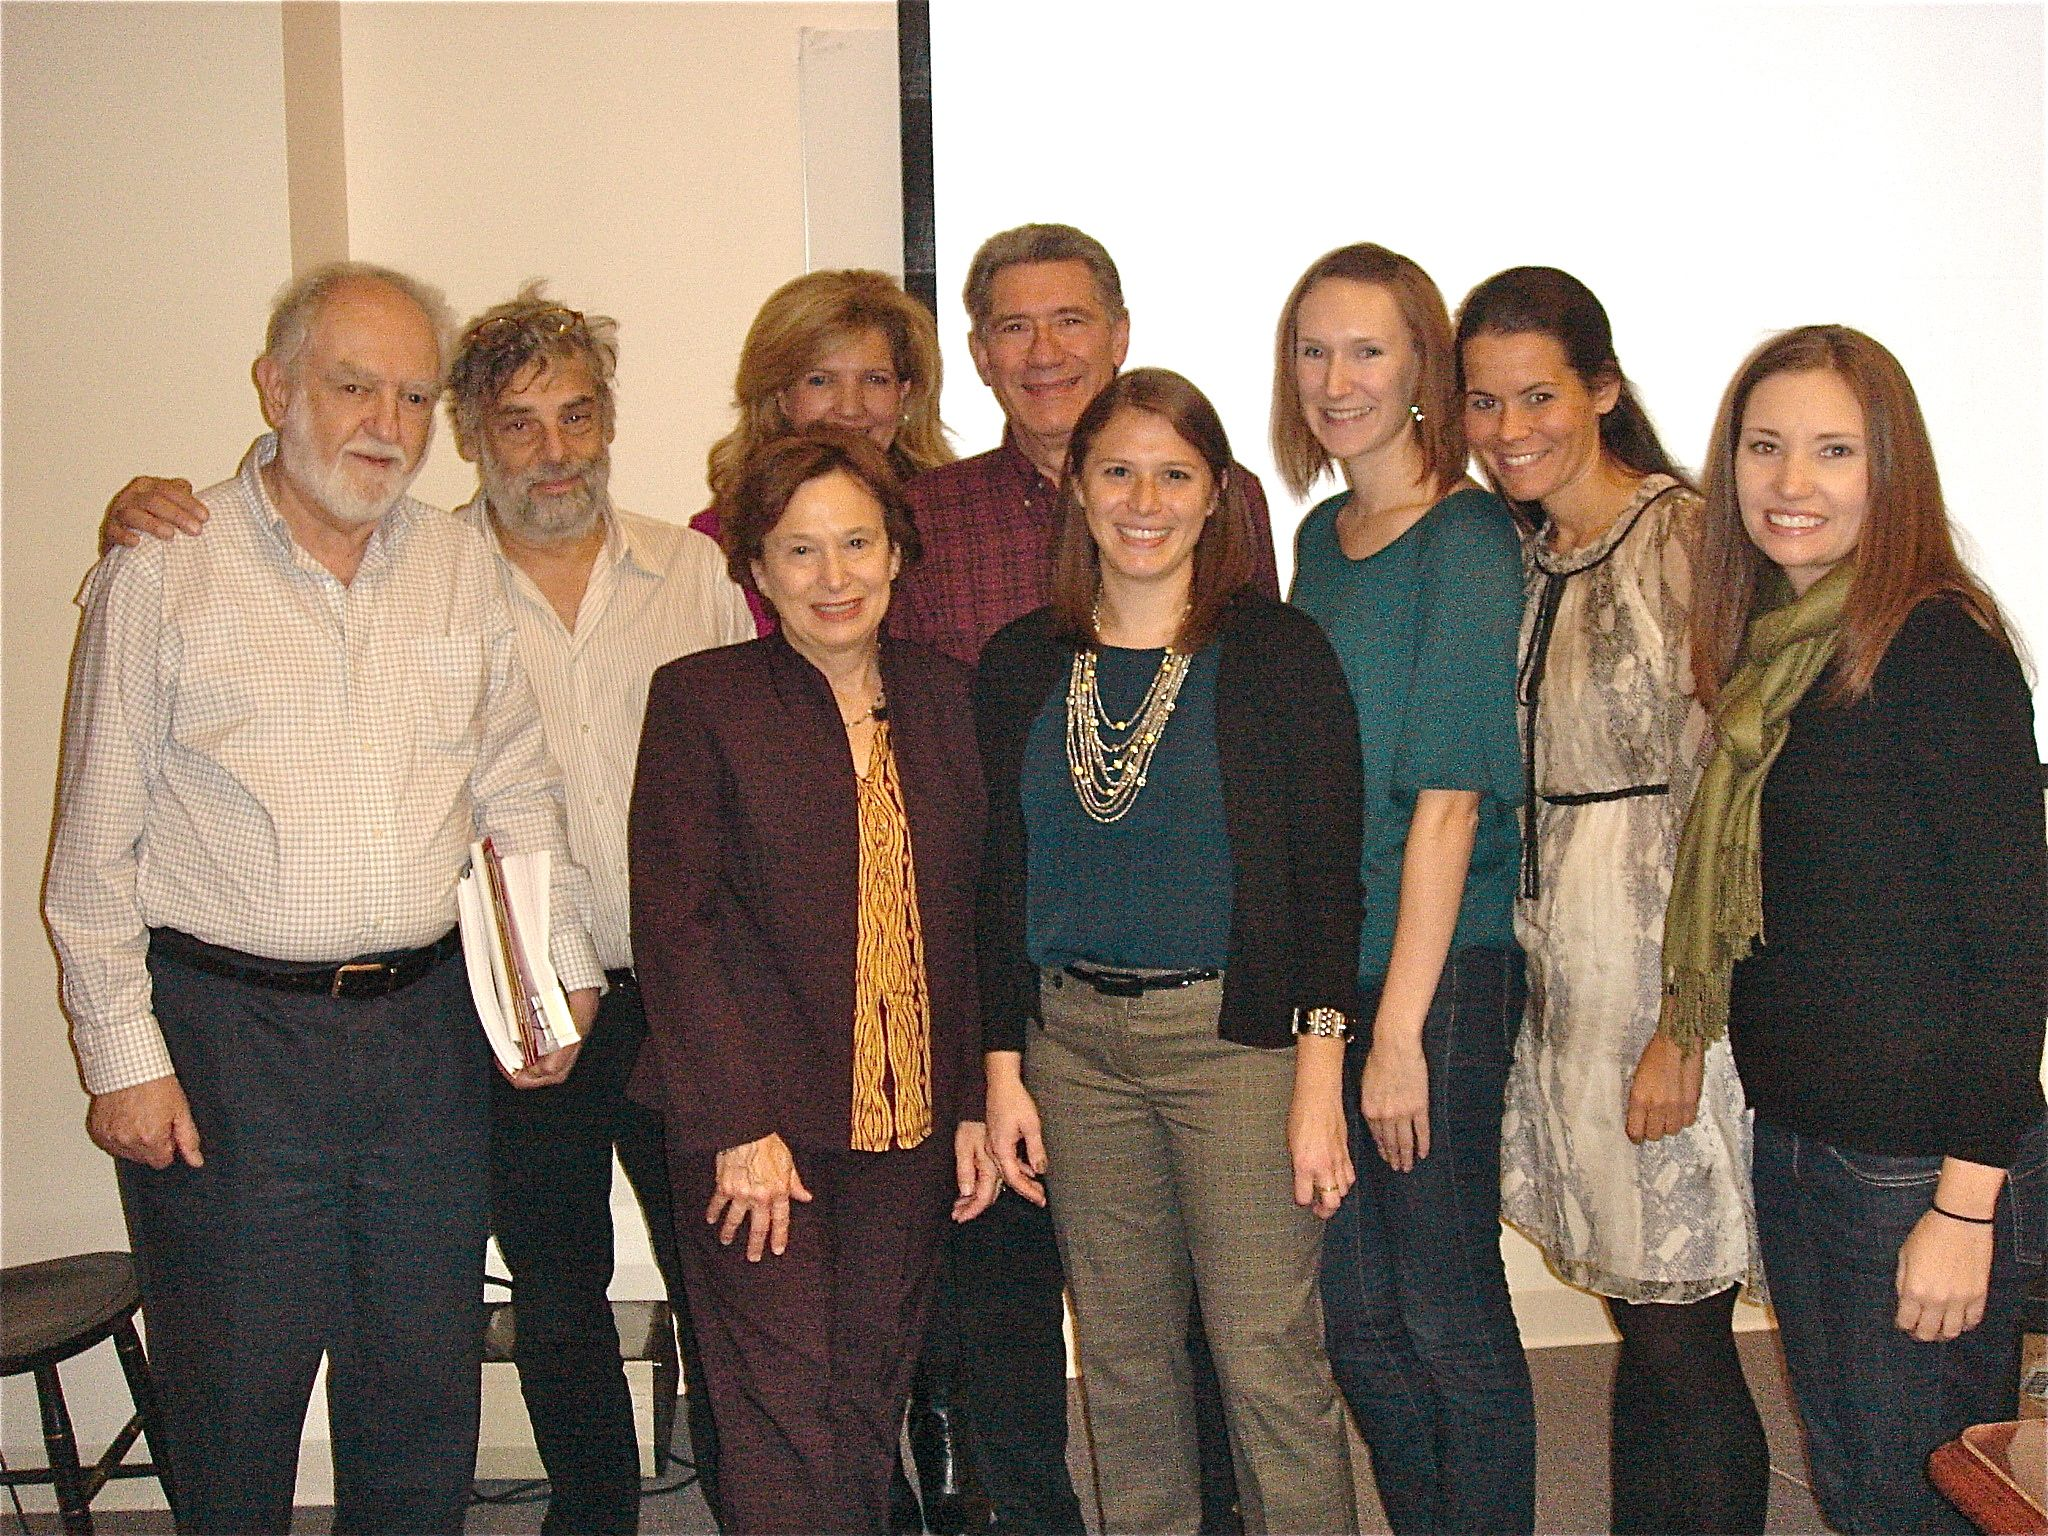 Group photo at Pam thesis defense.